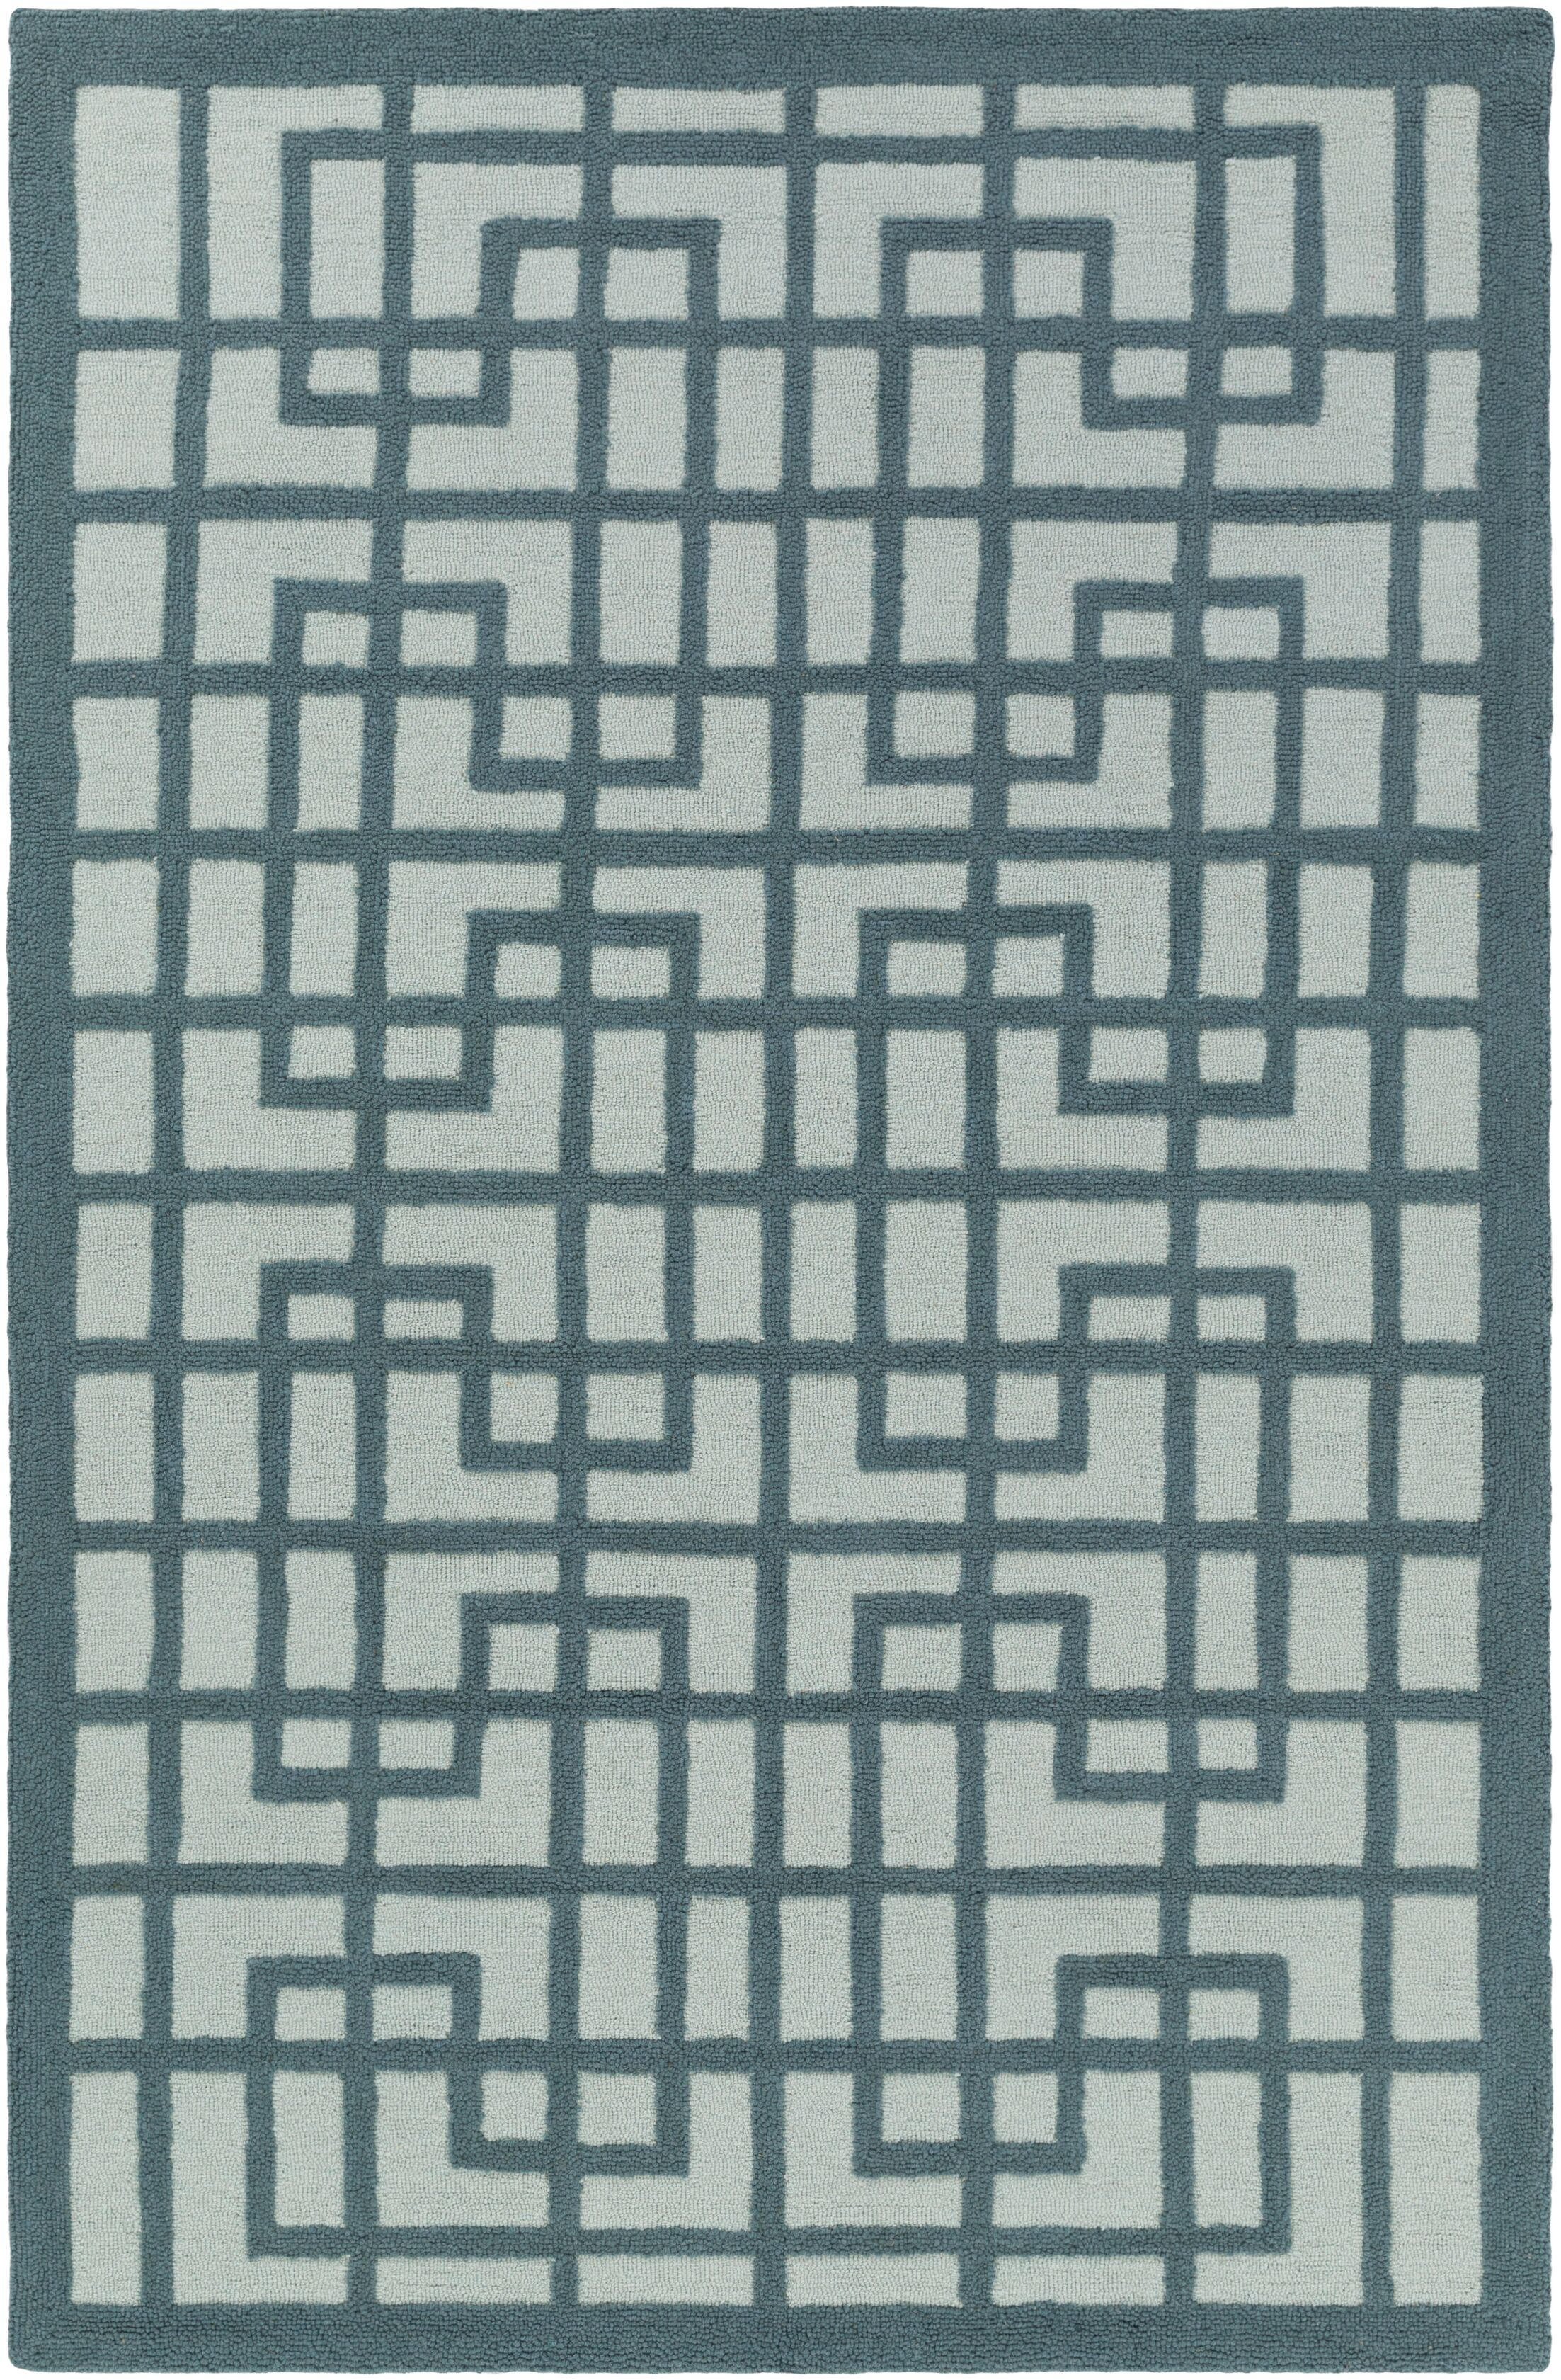 Rufina Hand-Crafted Teal/Mint Area Rug Rug Size: Rectangle 5' x 7'6